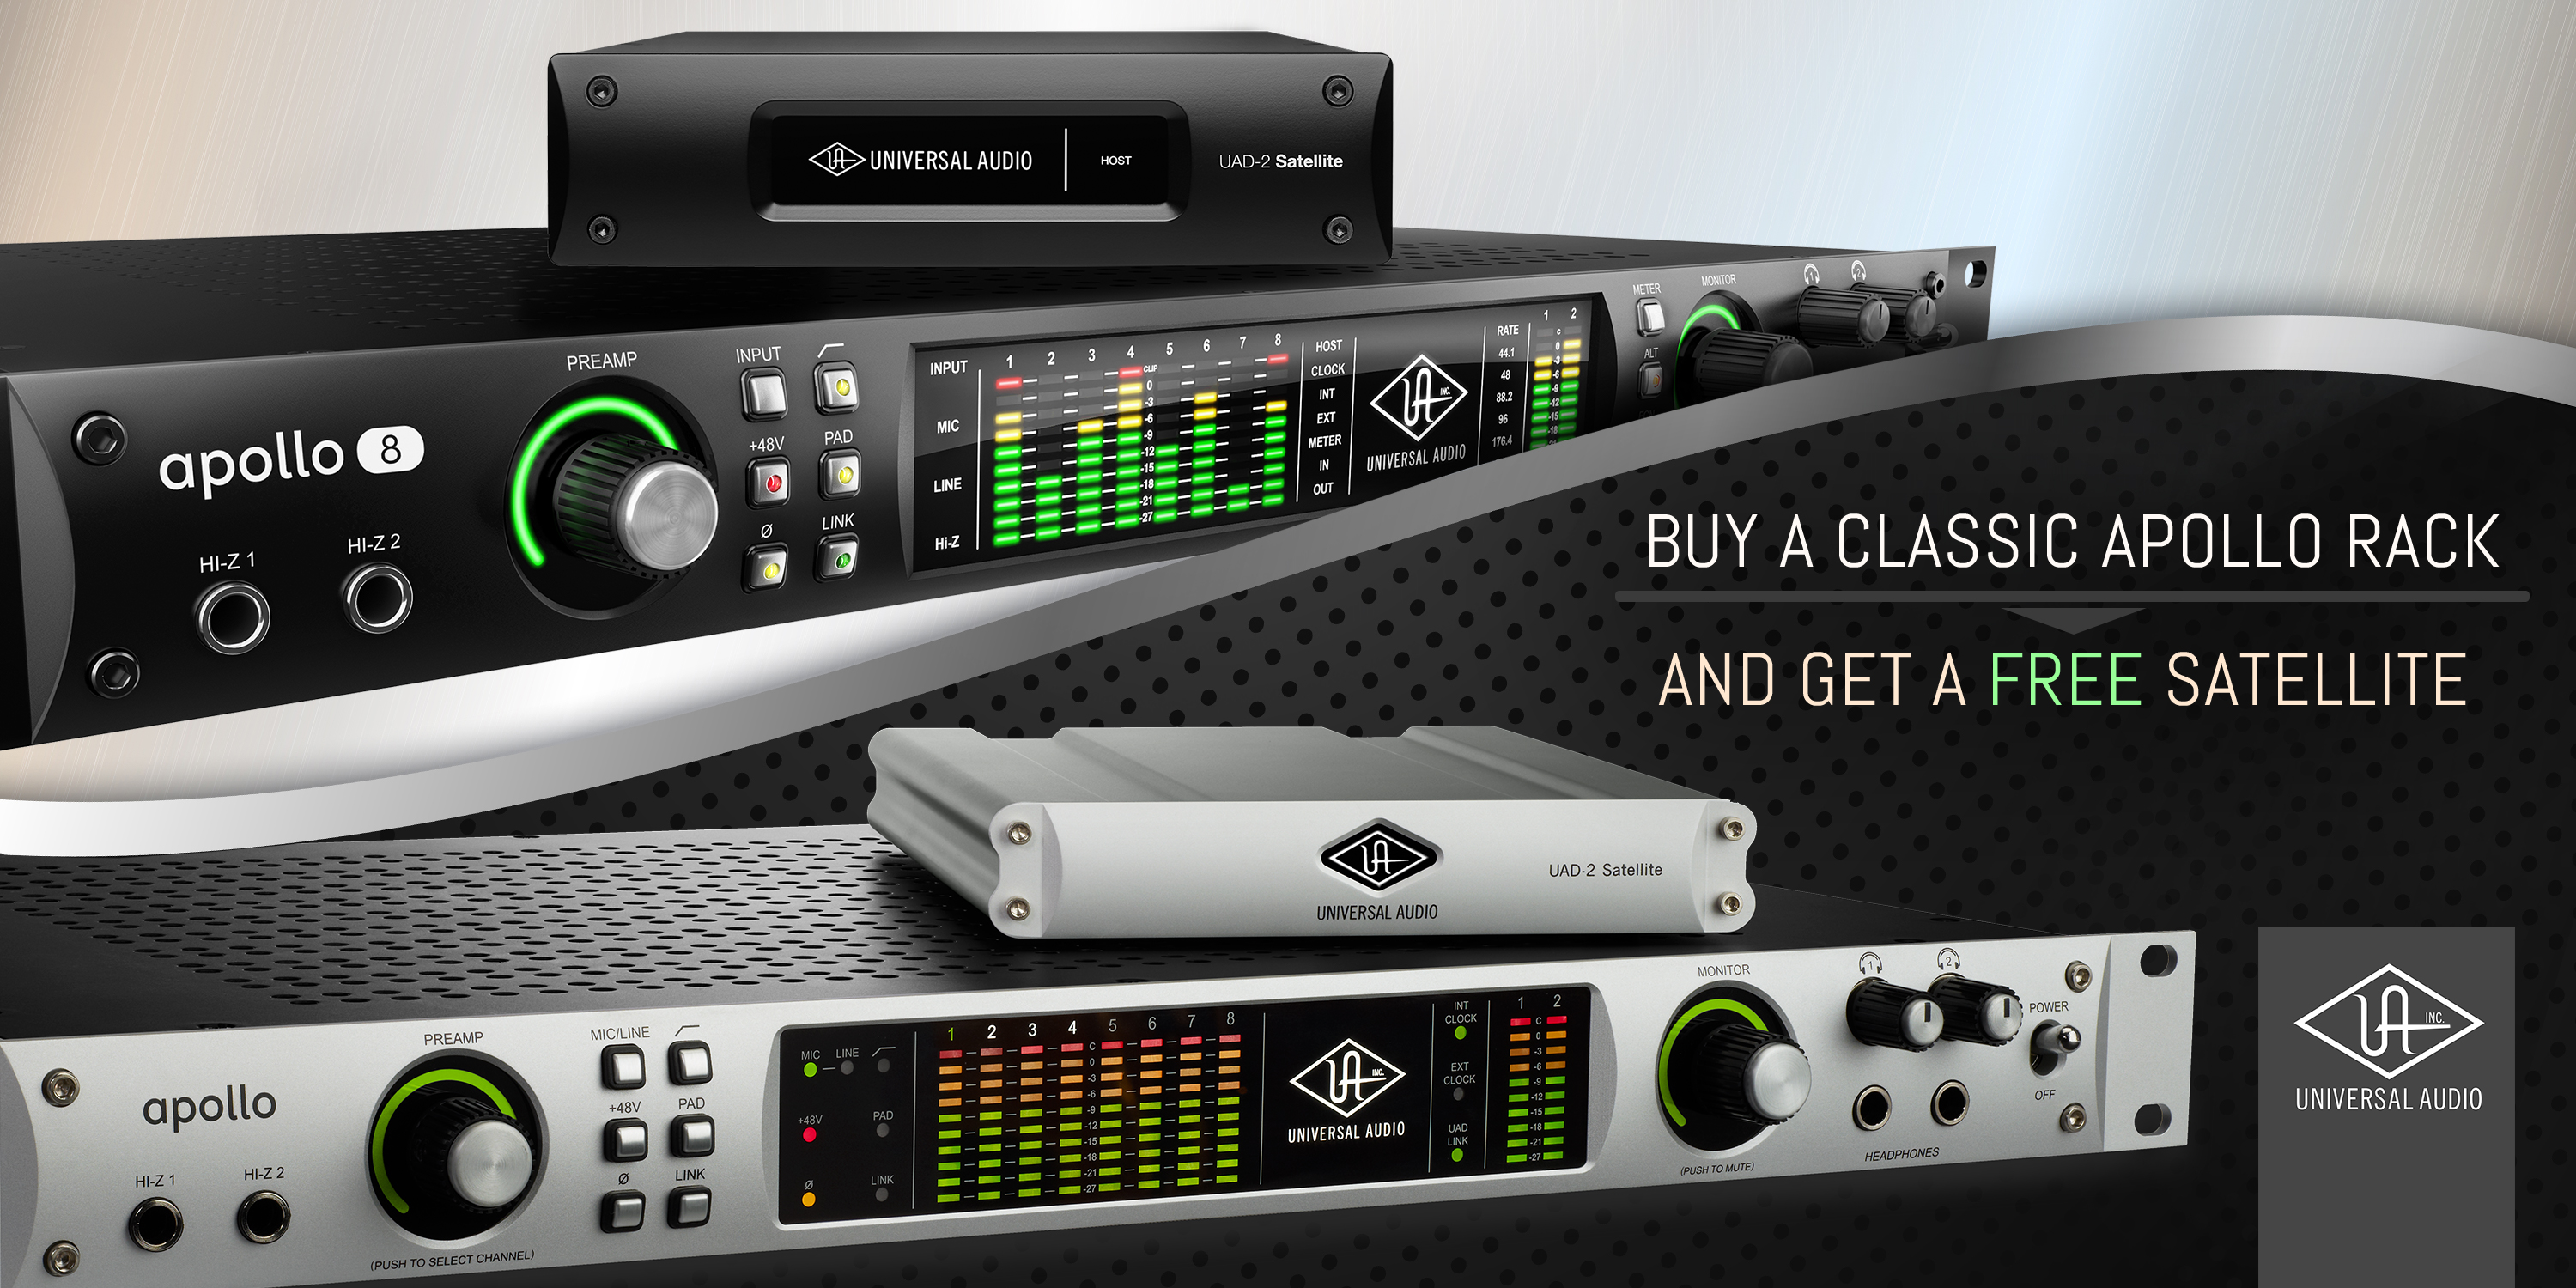 Buy an Apollo 8 QUAD or Apollo FireWire and Turbo-Charge it with a FREE UAD-2 QUAD Satellite DSP Accelerator!